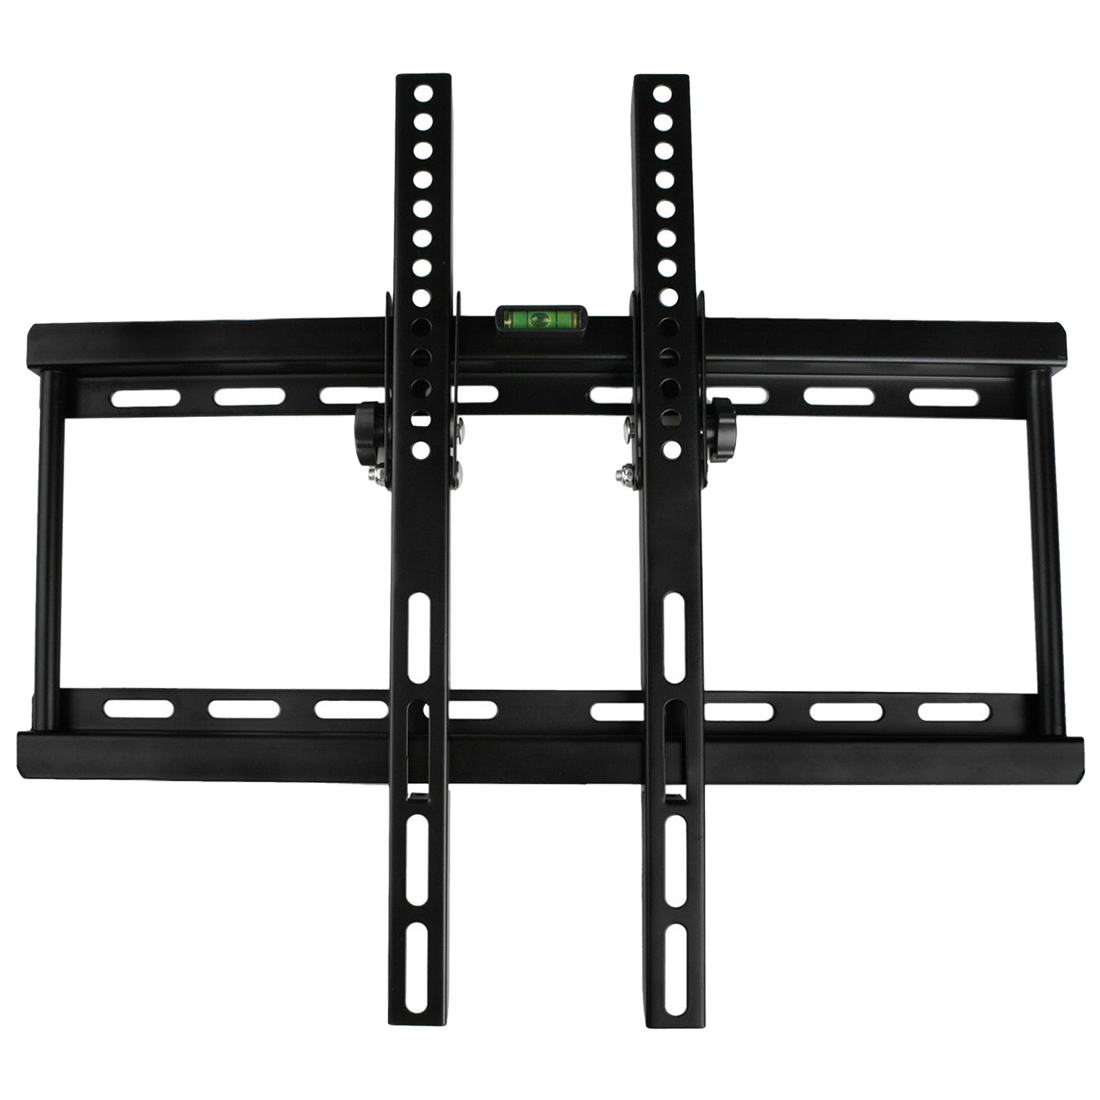 Cooperative Ksol Flat Slim Tv Wall Mount Bracket 23 28 30 32 40 42 48 50 55 Inch Led Lcd Plasma Beneficial To Essential Medulla Bathroom Fixtures